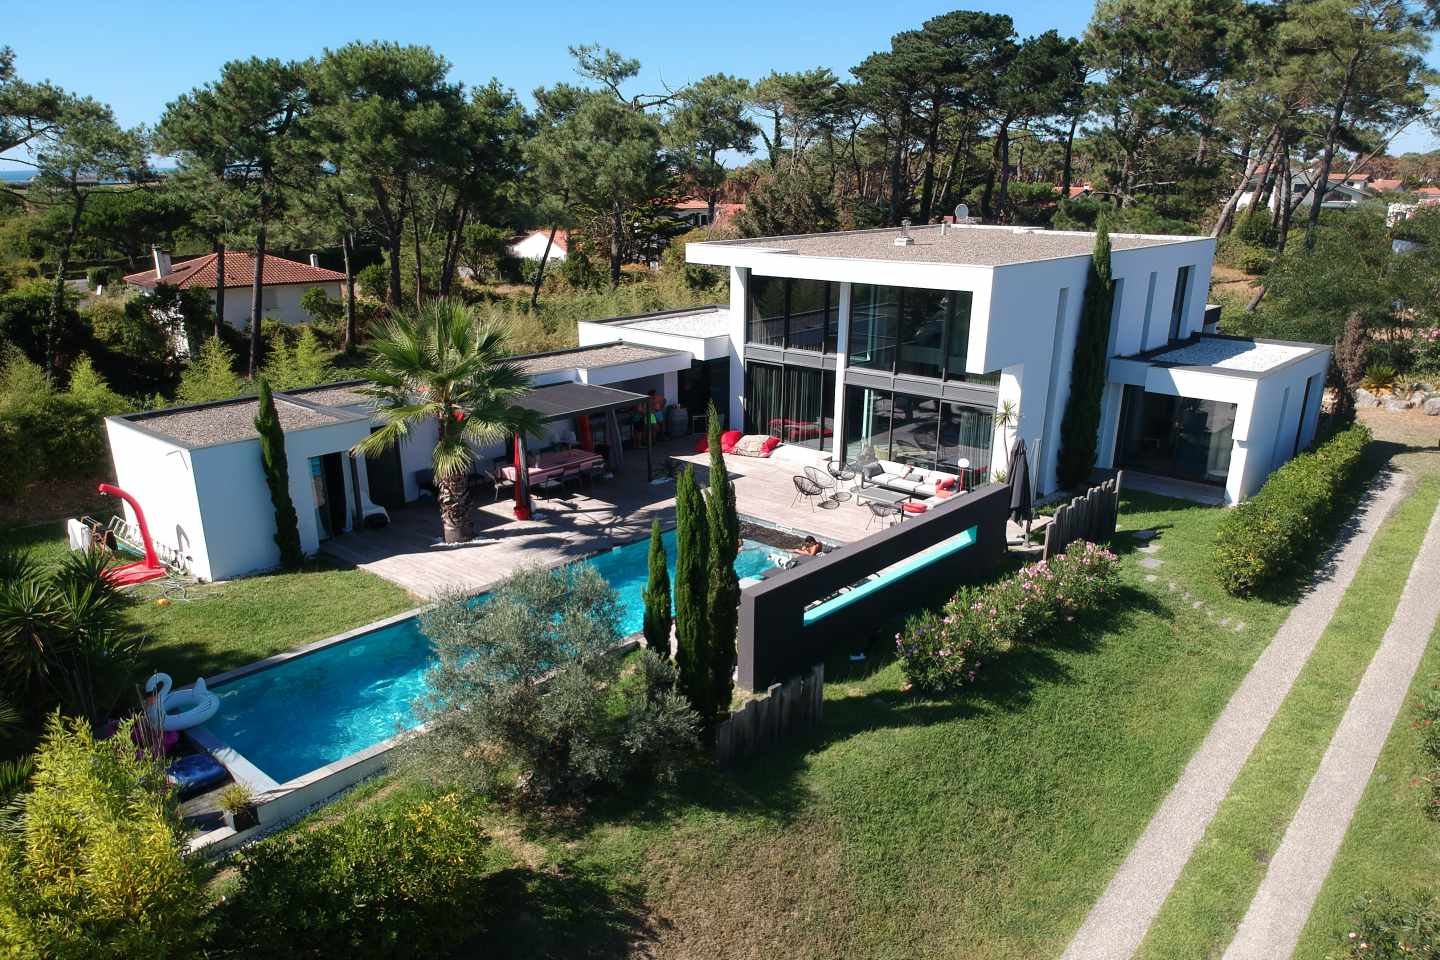 MALIBU Rent a design villa with swimming pool in a quiet area in Anglet.